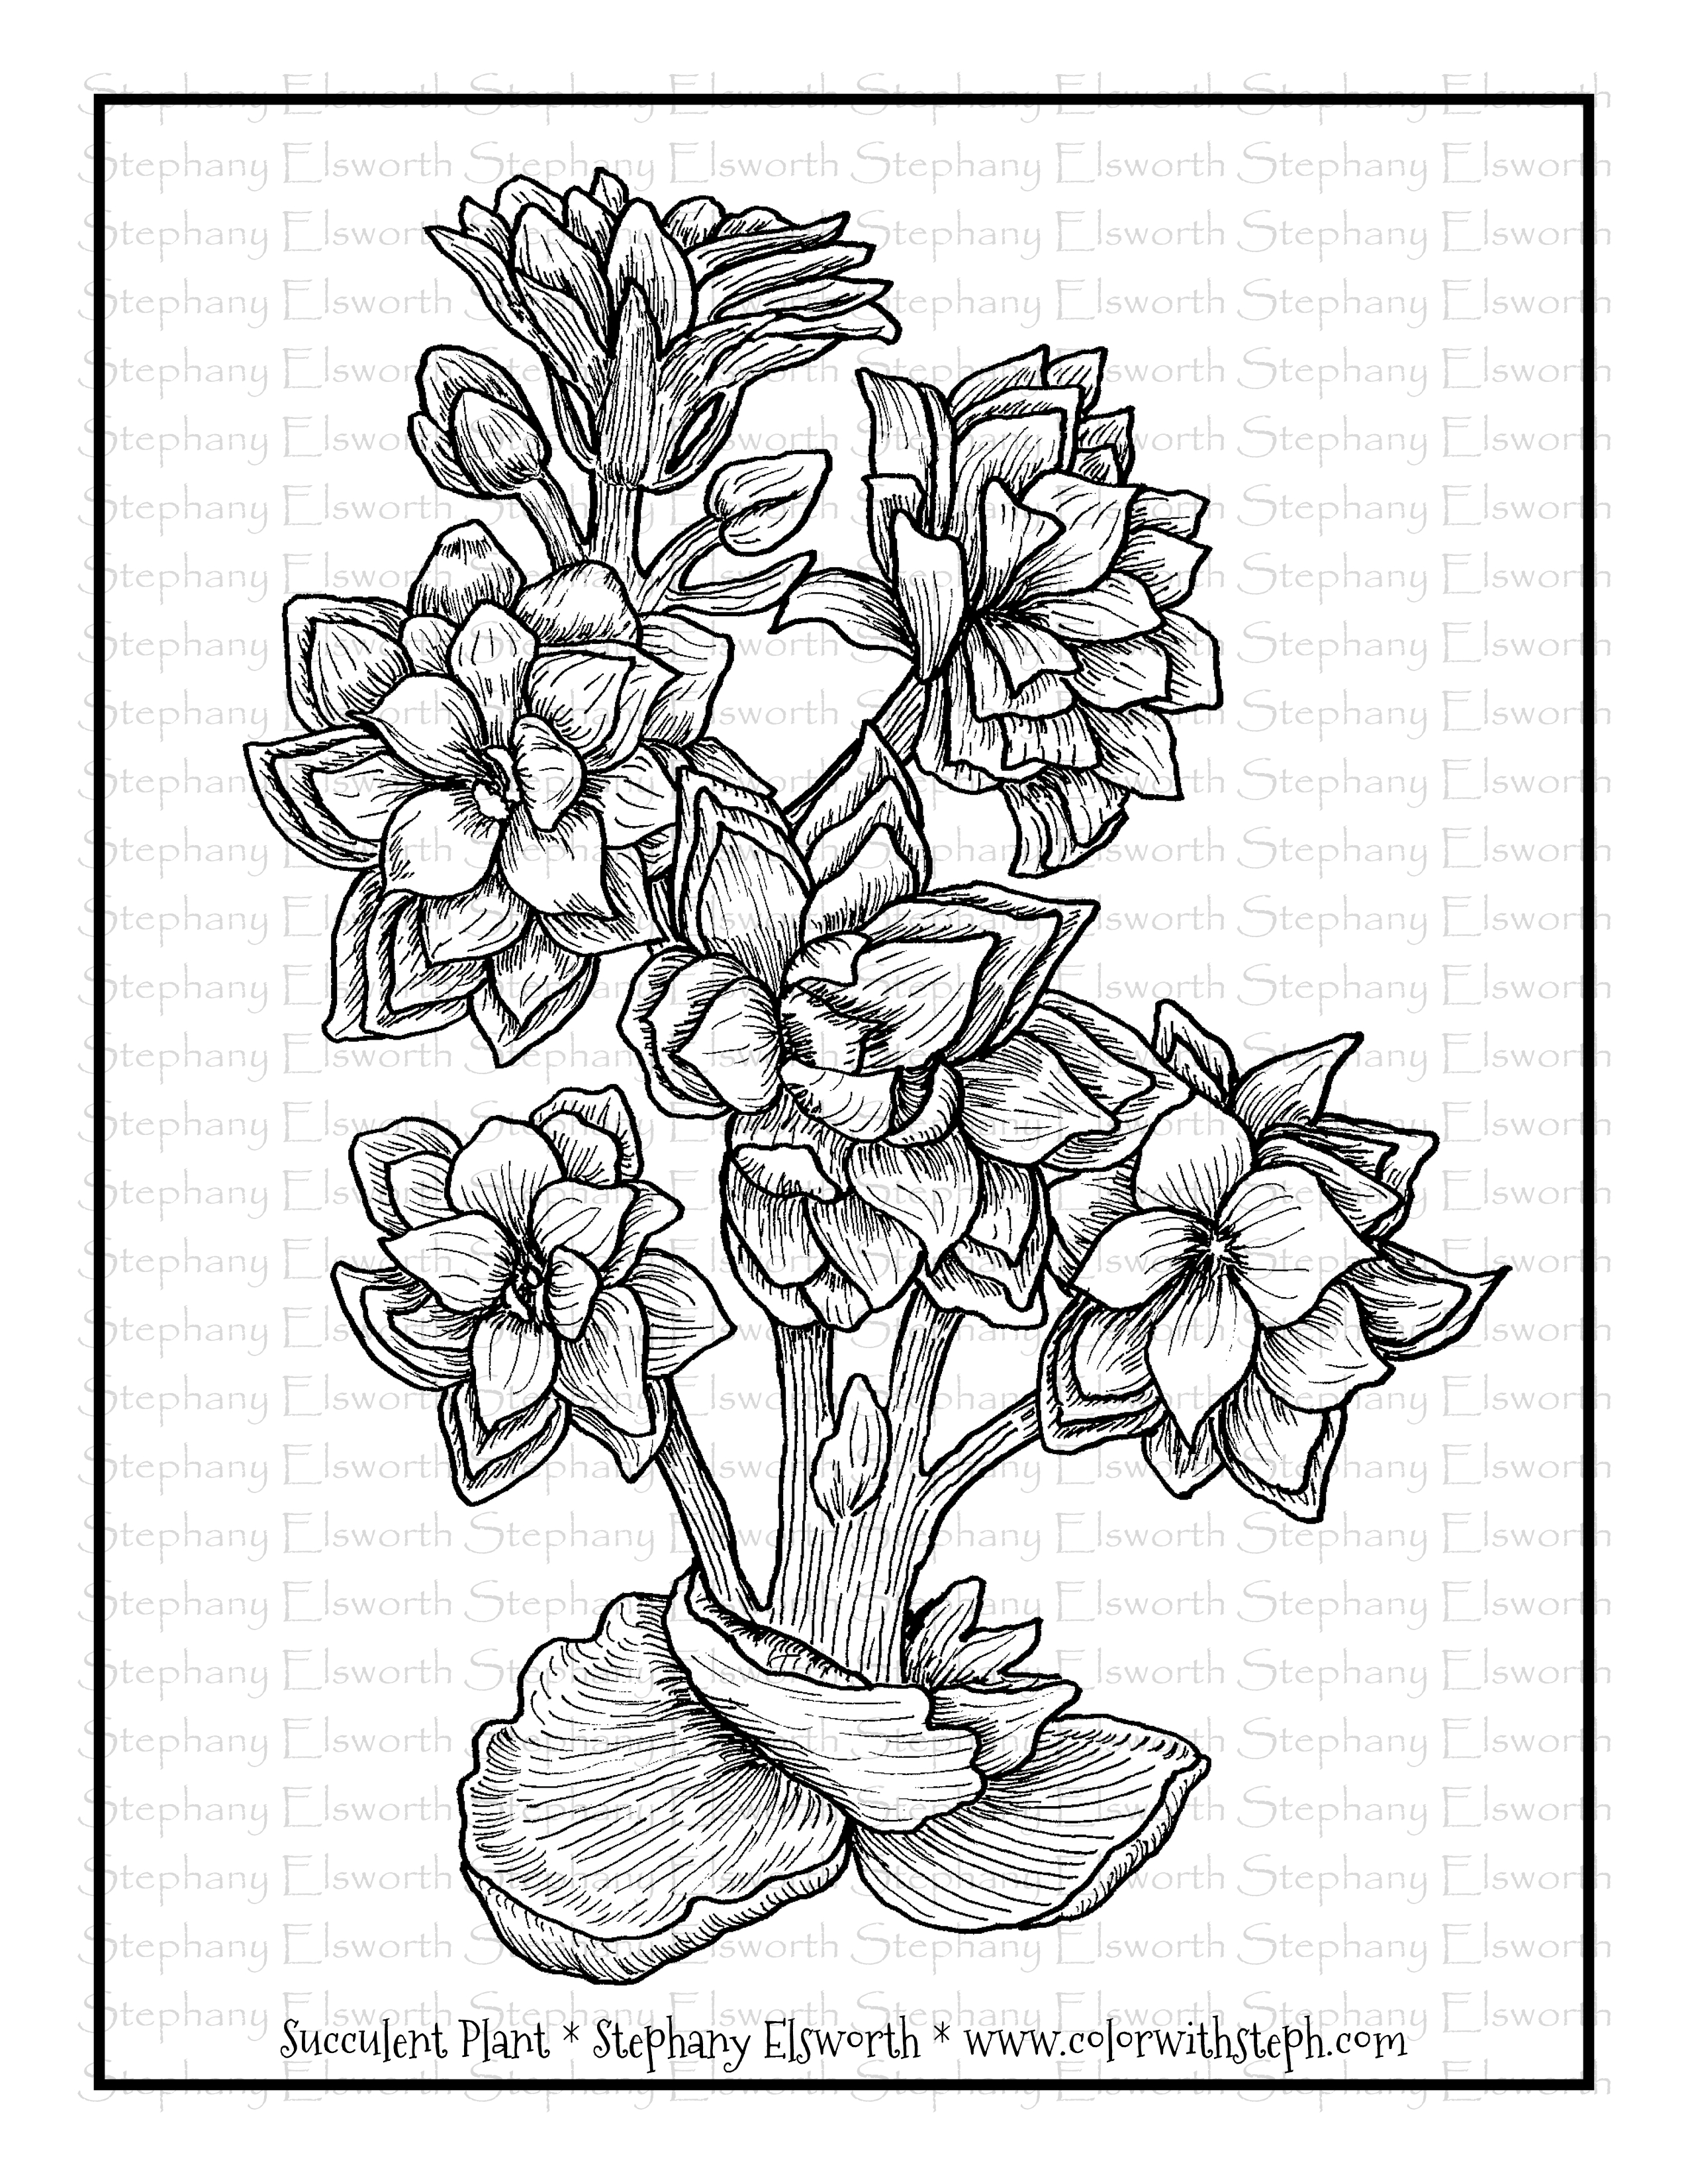 Succulent Plant Free Printable Coloring Page - Color with ...